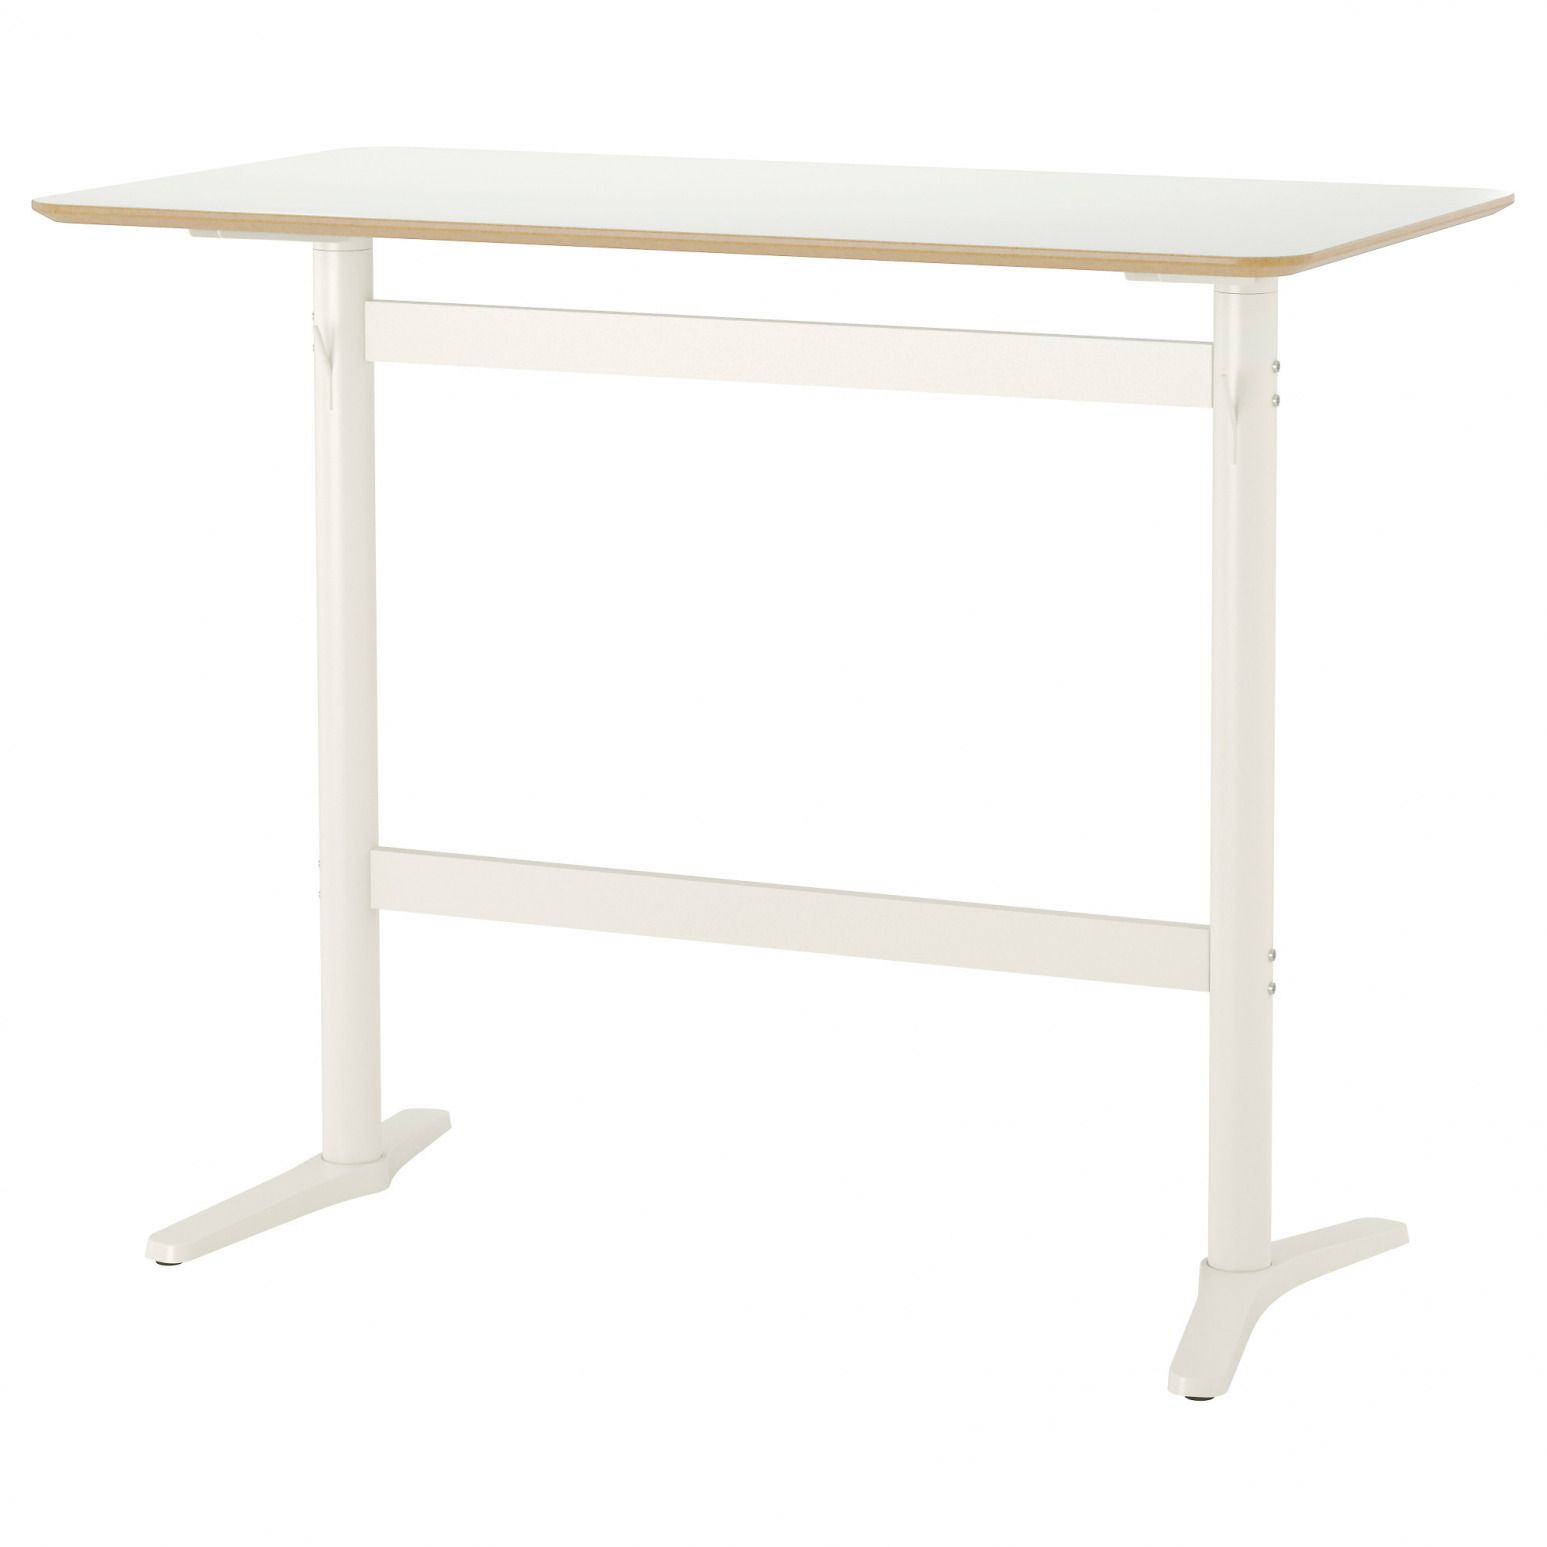 100 Round Bar Table Ikea Best Color Furniture For You Check More At Http Livelylighting